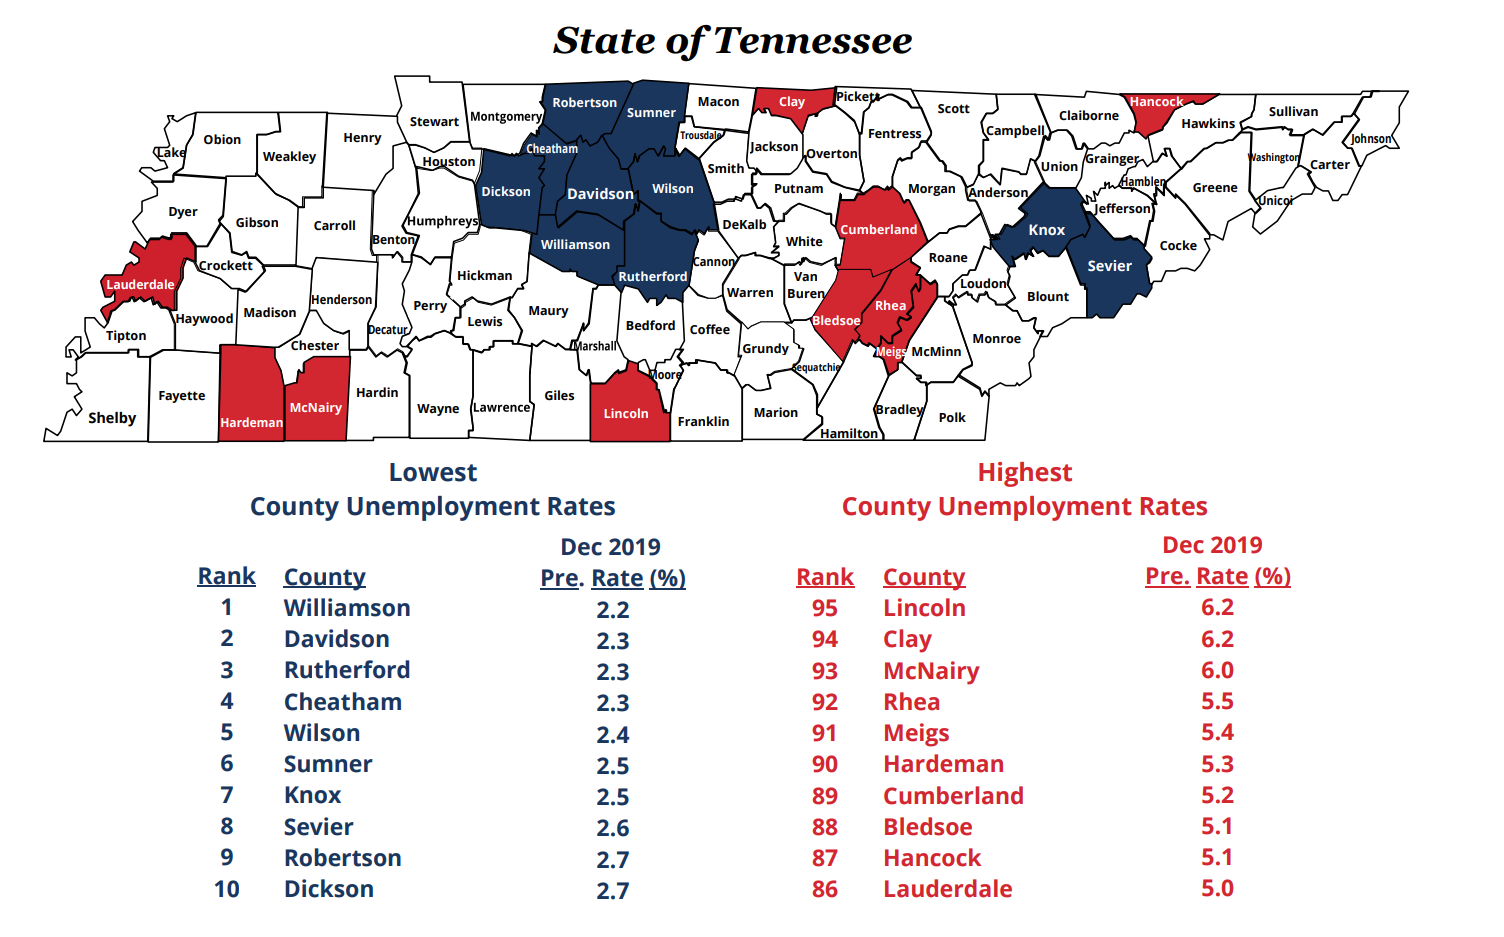 Rutherford County Unemployment at 2.3%